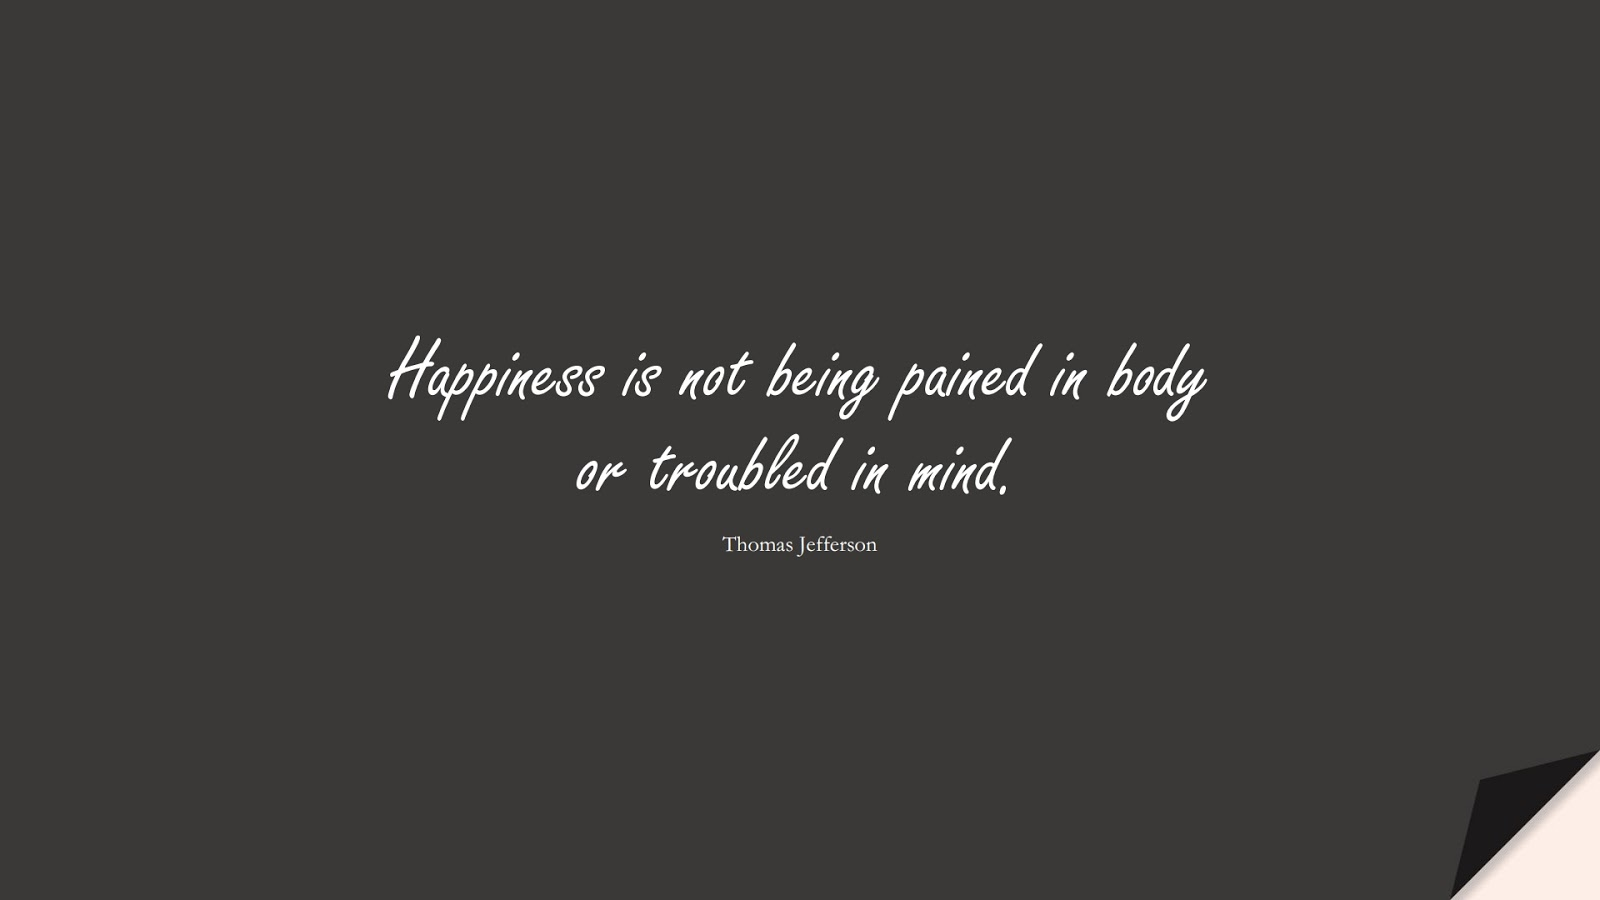 Happiness is not being pained in body or troubled in mind. (Thomas Jefferson);  #HappinessQuotes